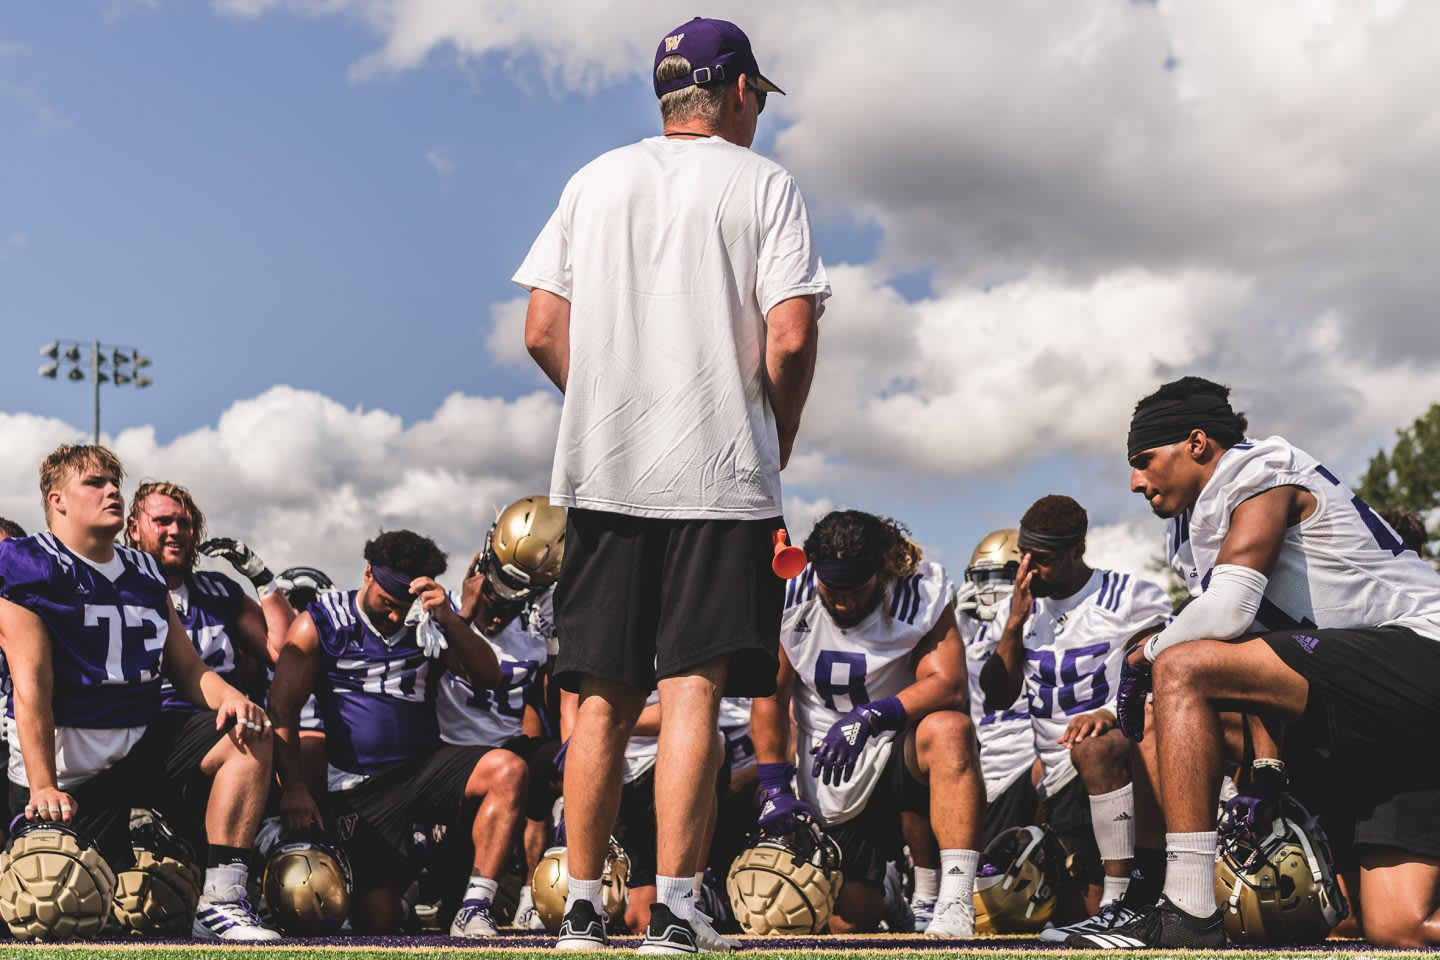 coach talking to his team of american football players